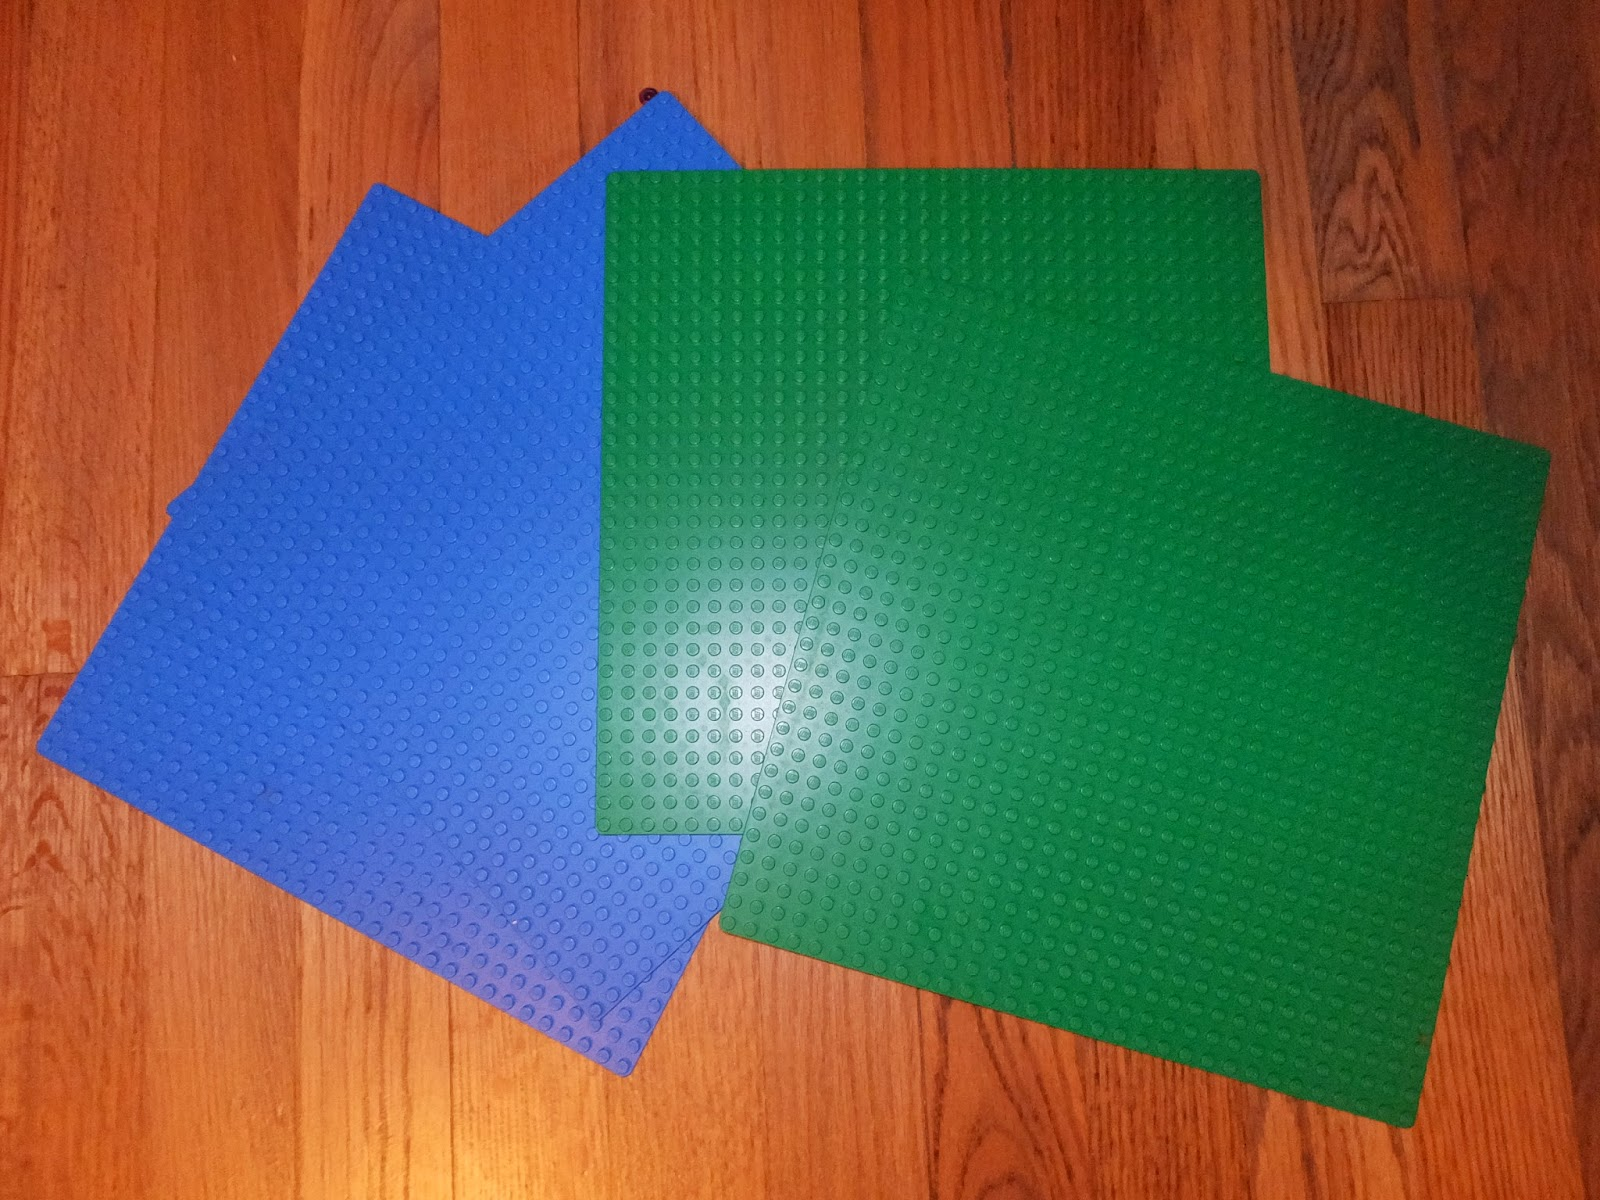 Toys R Us Lego Table And Chairs Ergonomic Chair Kneeling Kidspert Make Your Own